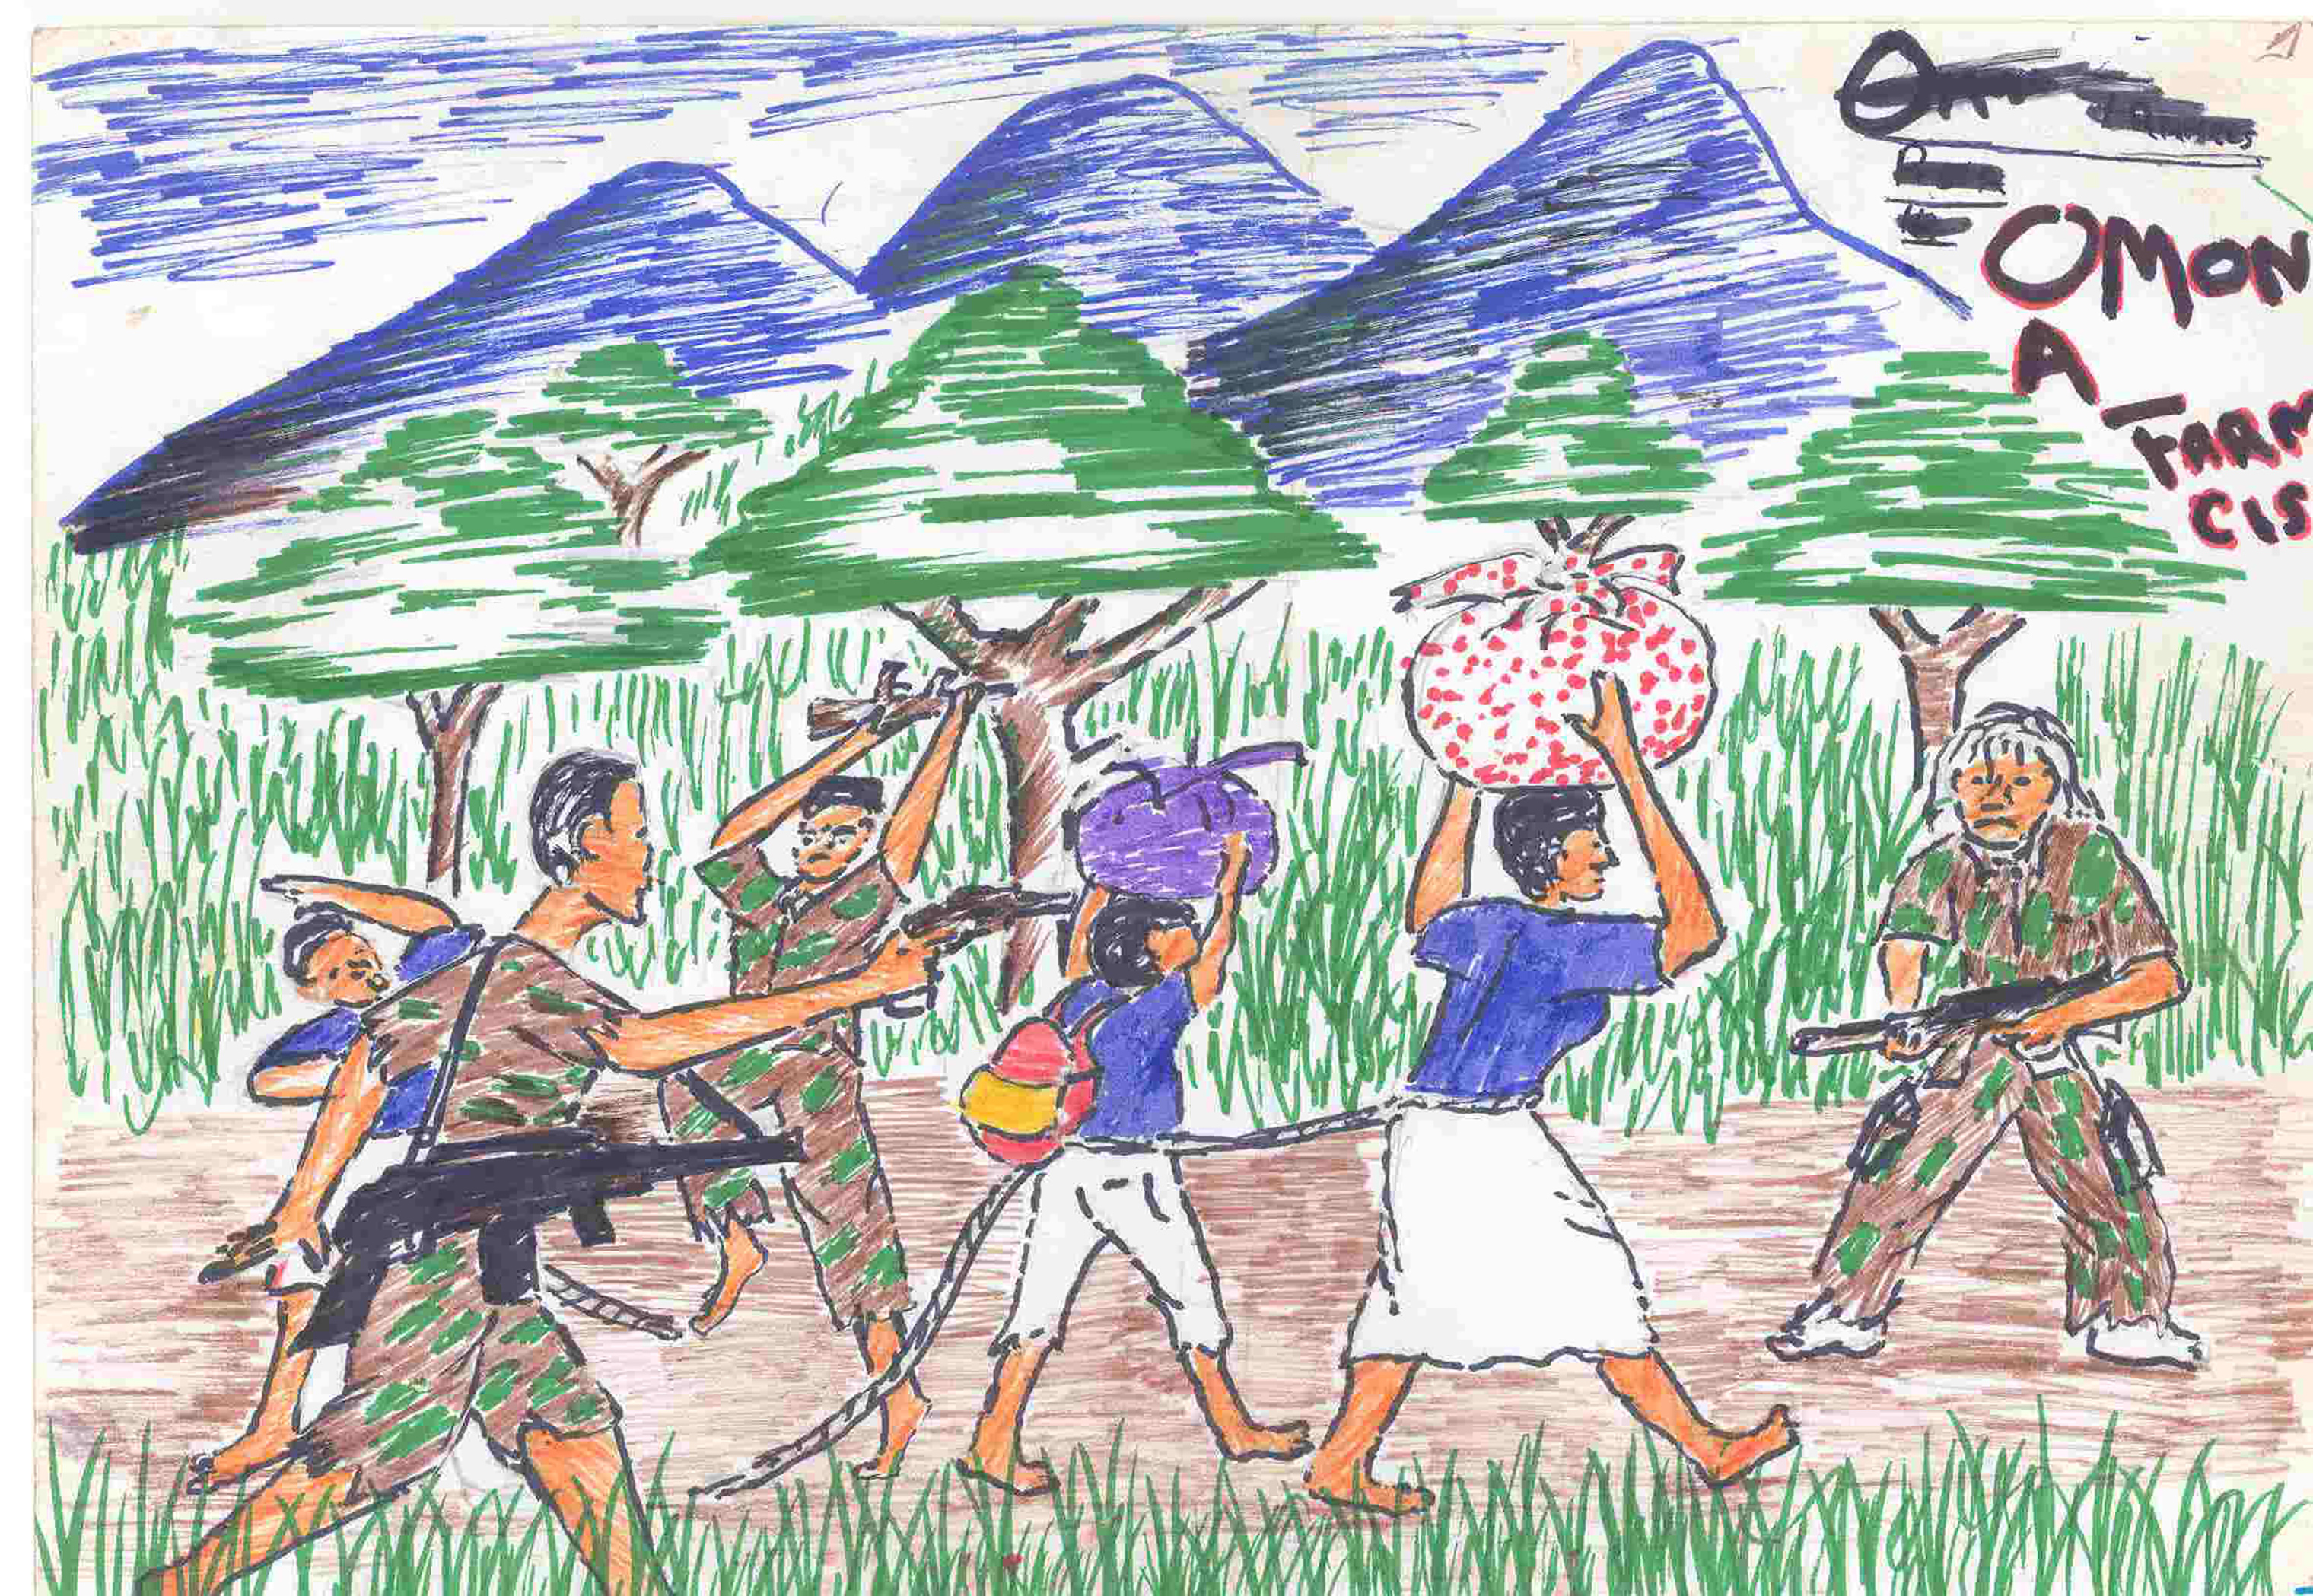 A drawing made by former child soldier in Uganda in 2002. In Uganda, the IRC worked with children during the height of the Lord's Resistance Army's reign of terror.